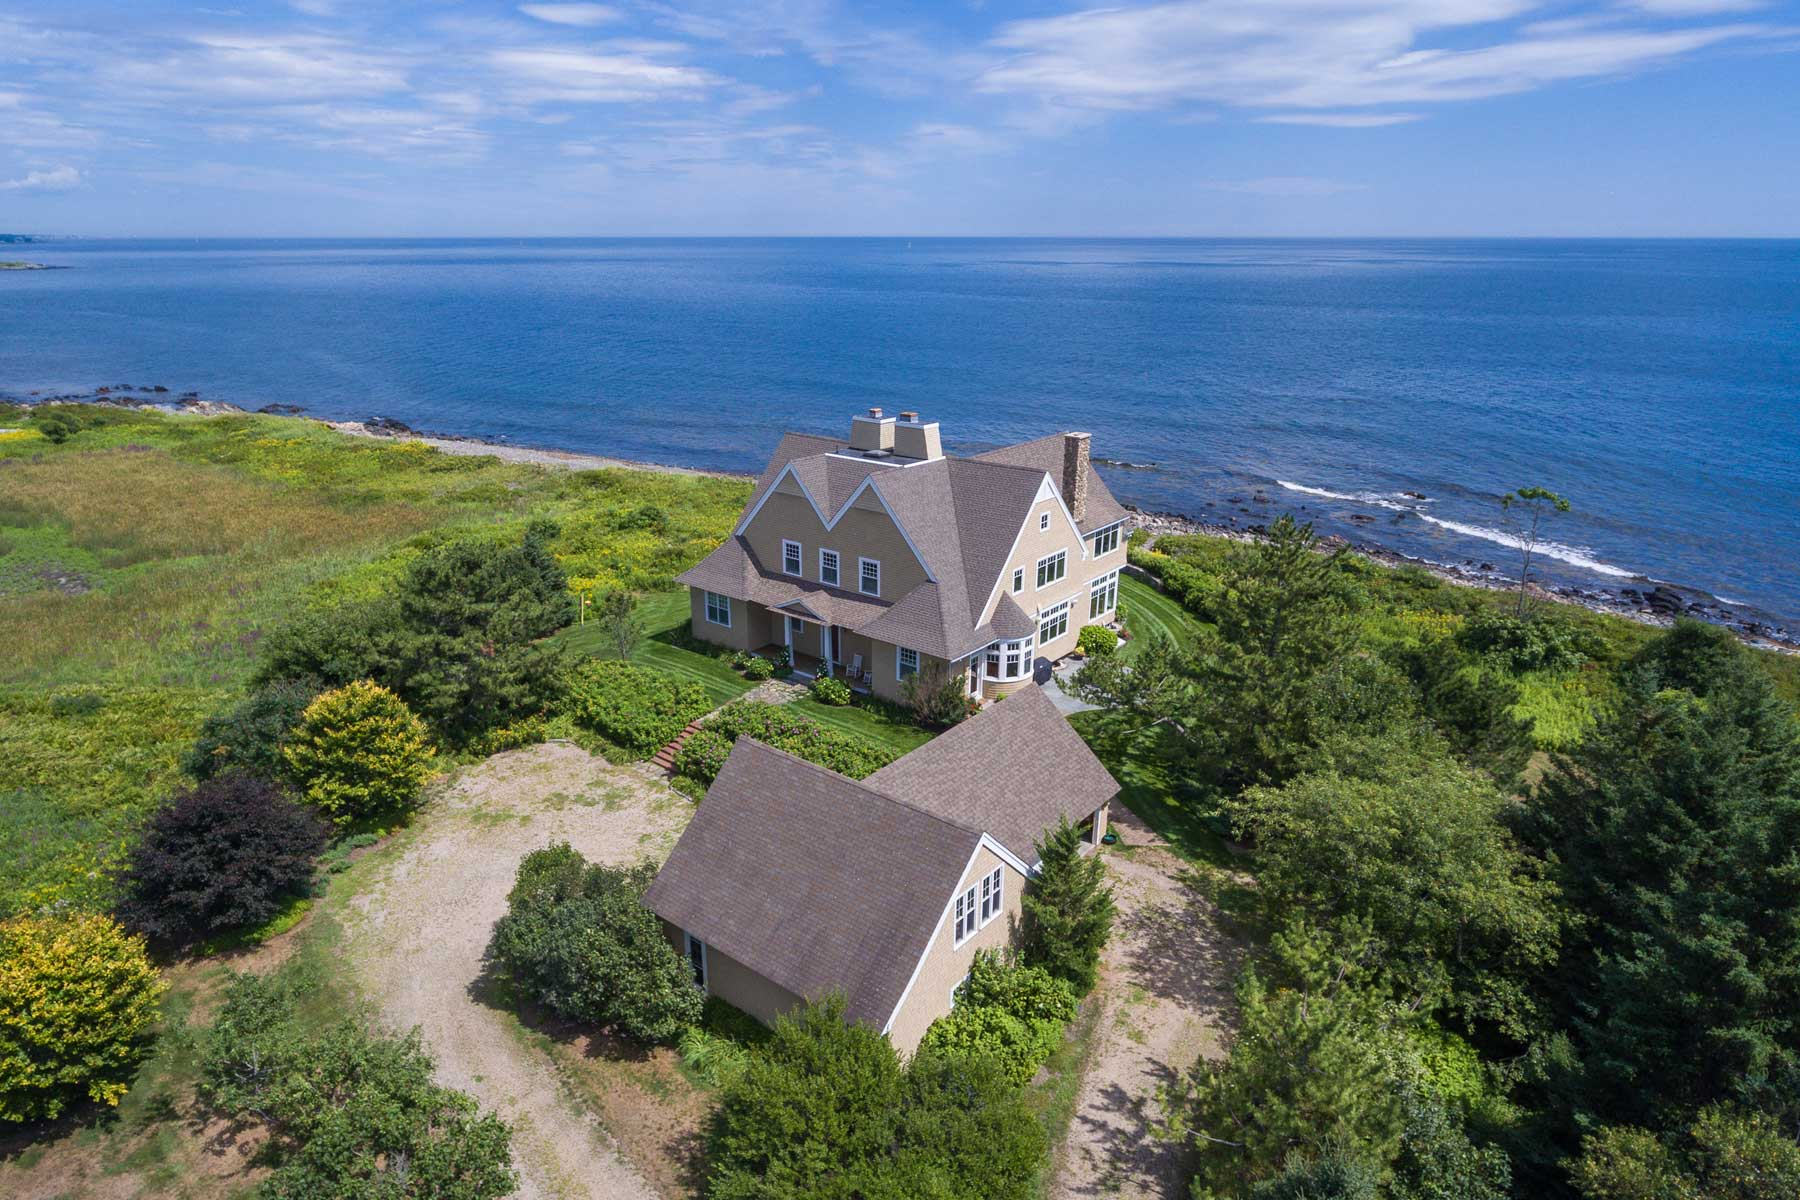 단독 가정 주택 용 매매 에 Kittery Point Oceanfront Shingle Style 94 Goodwin Road Kittery, 마이애미, 03905 미국